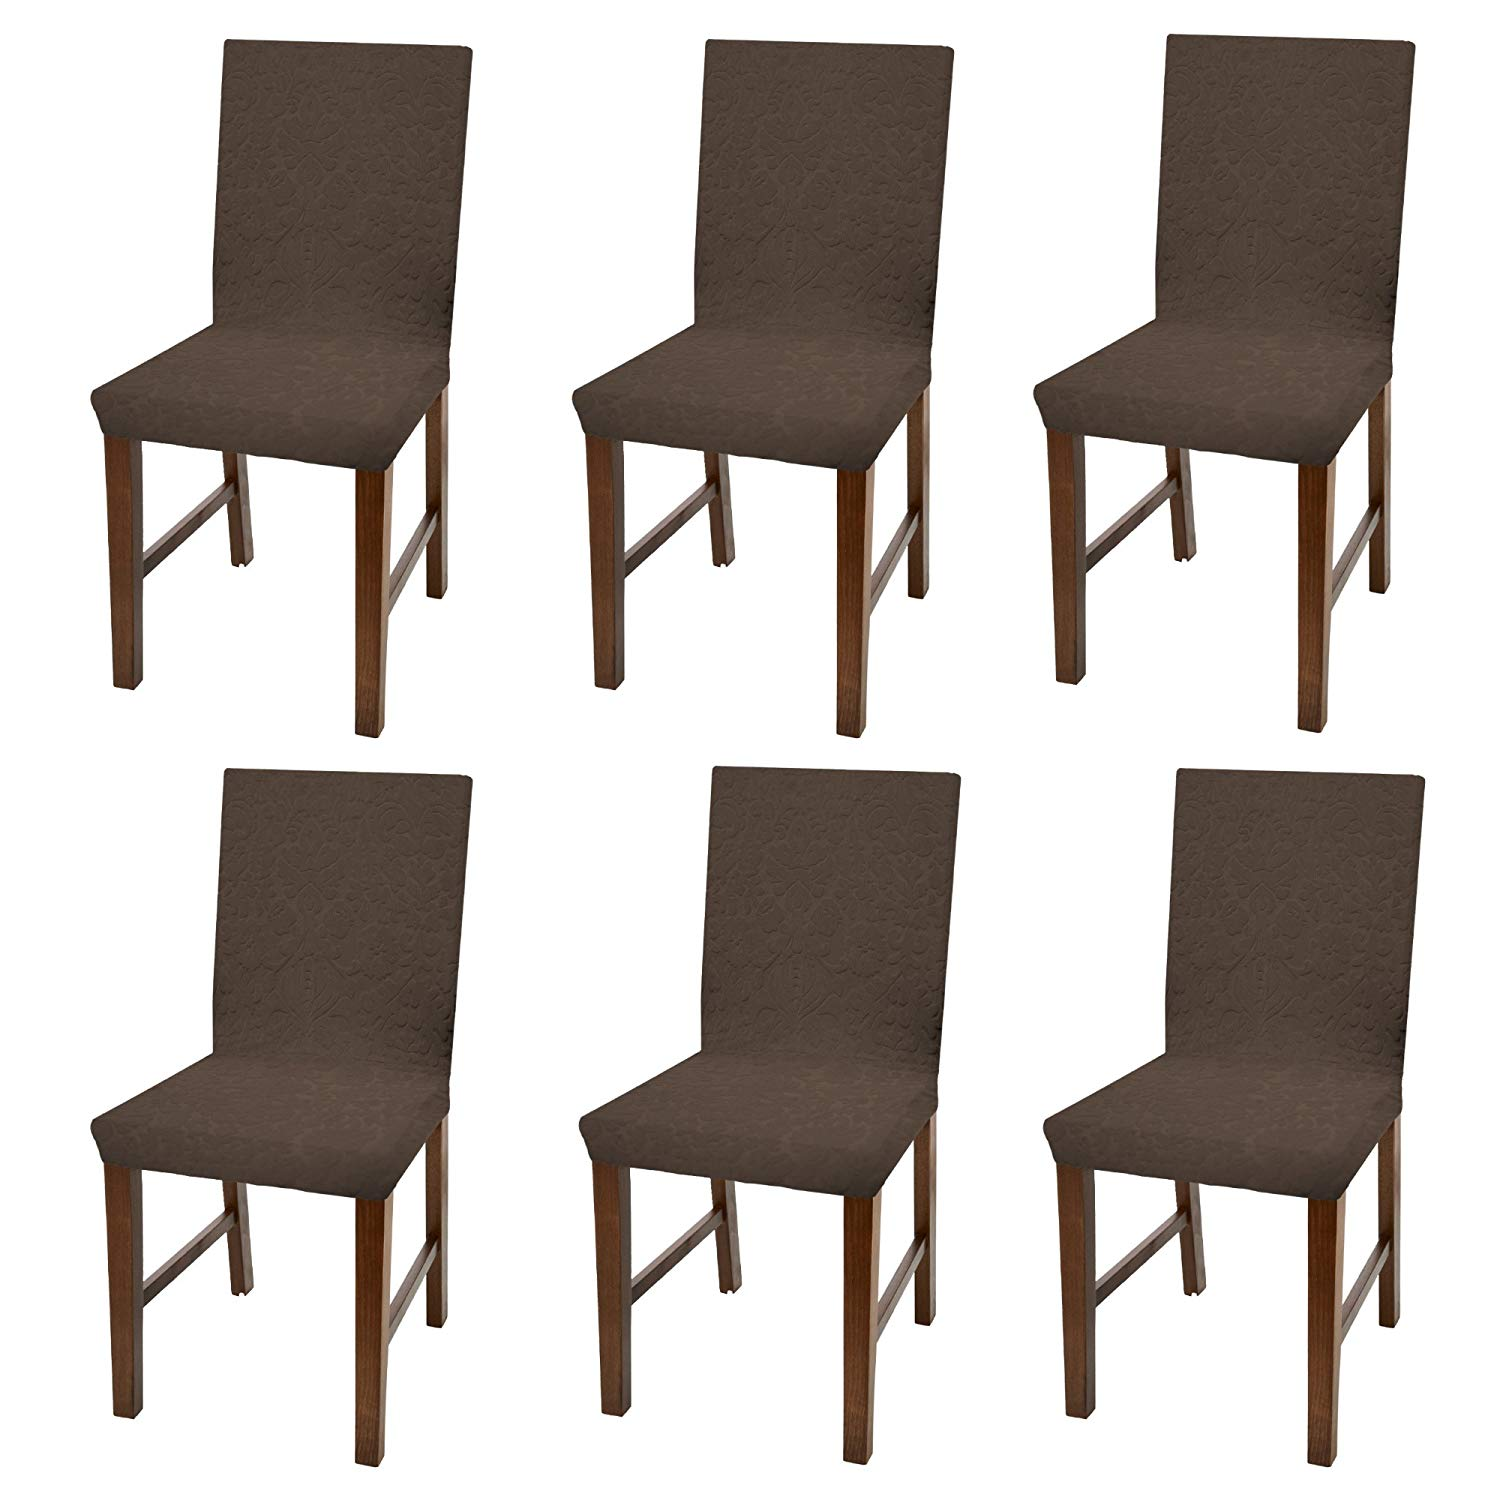 Damask Dining Chair Linen Store Luxurious Damask Dining Chair Cover Form Fitting Soft Parson Chair Slipcover Brown Set Of 6